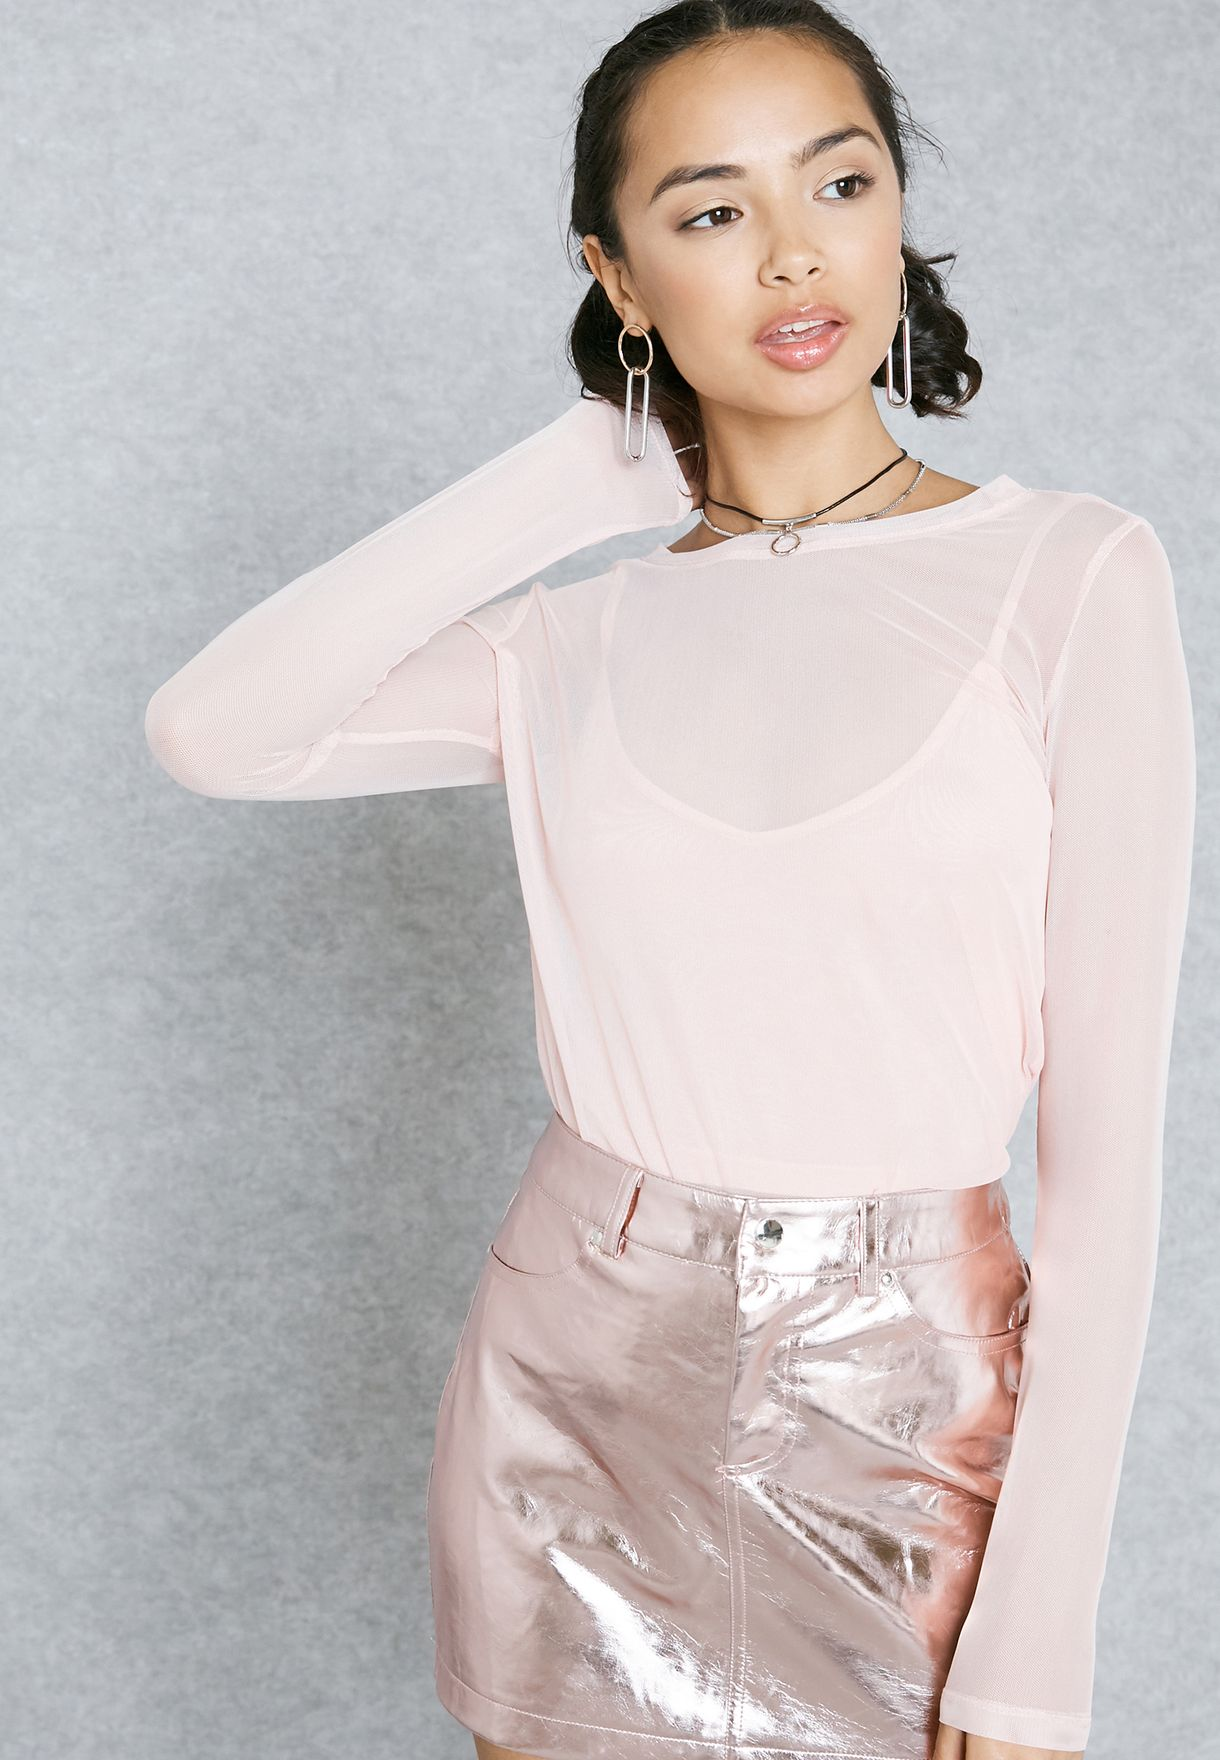 dfd64ad28efcb Shop Forever 21 pink High Neck Sheer Top 86976 for Women in Qatar ...